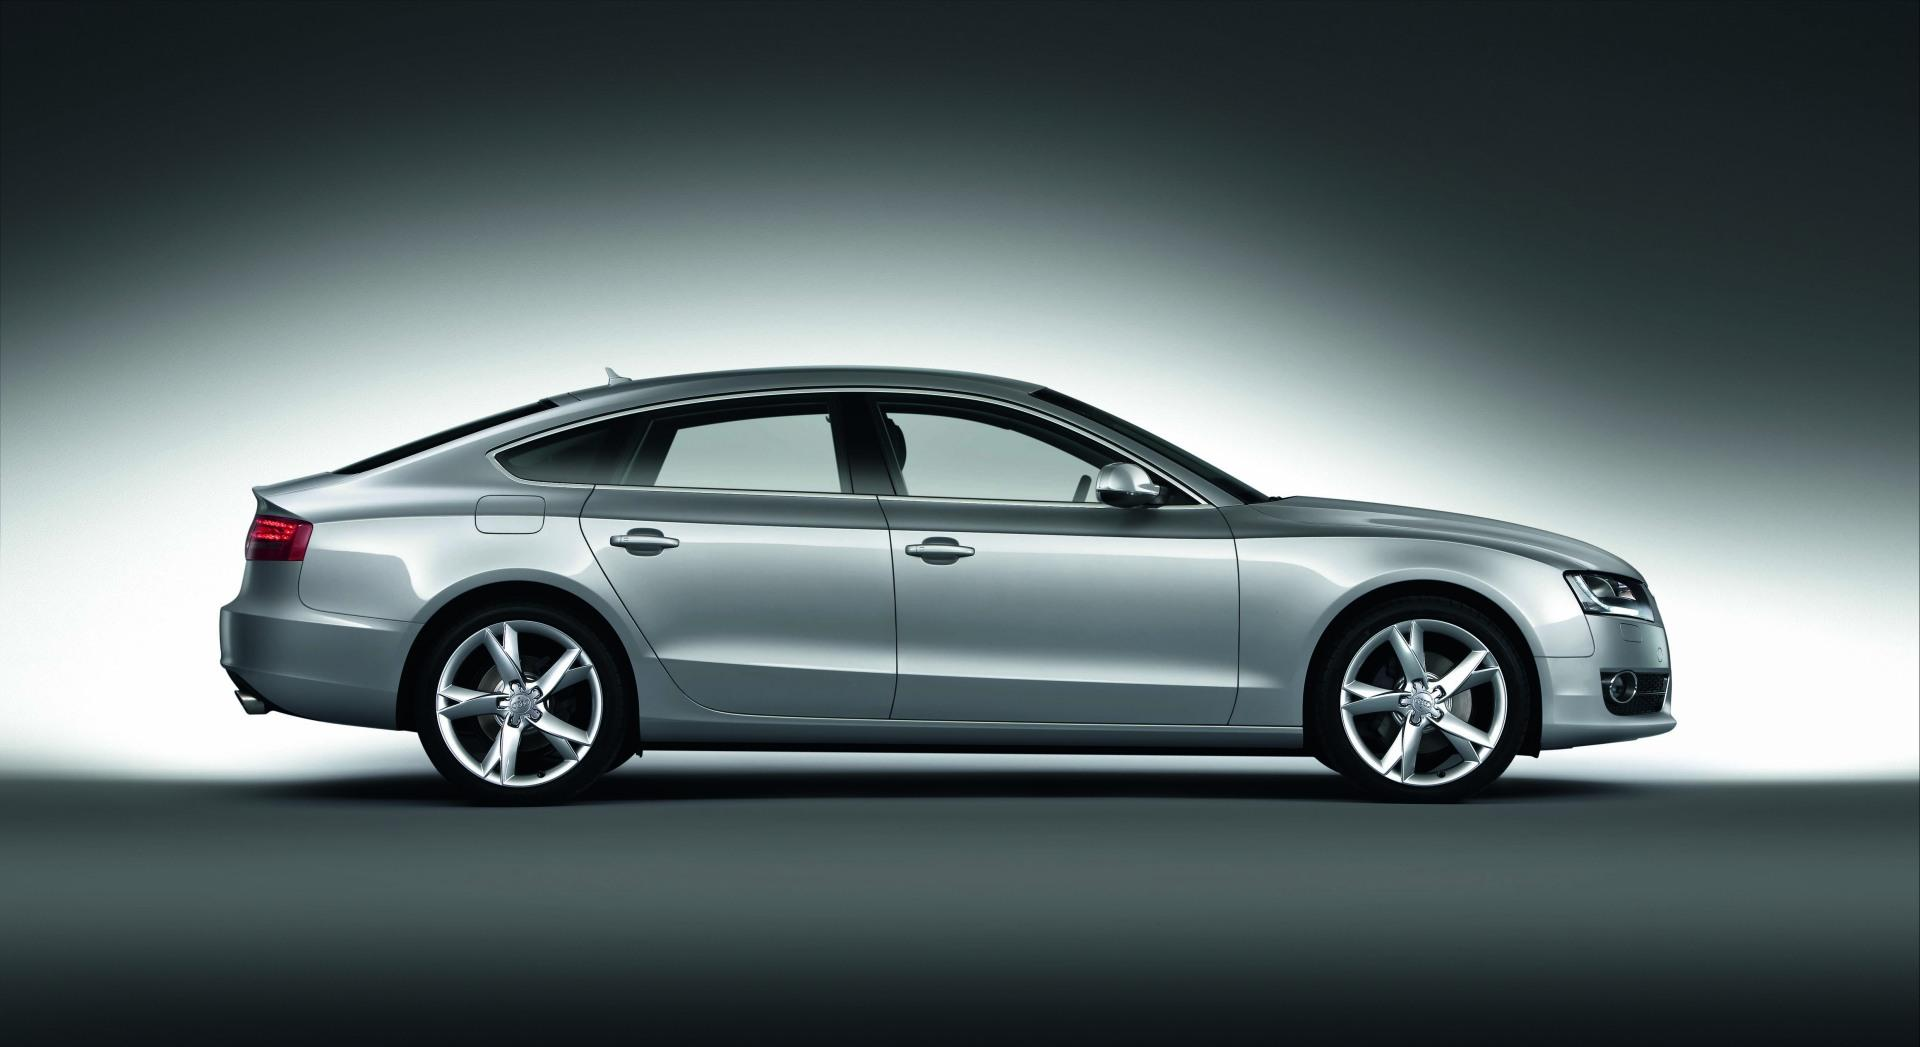 2010 audi a5 sportback news and information. Black Bedroom Furniture Sets. Home Design Ideas